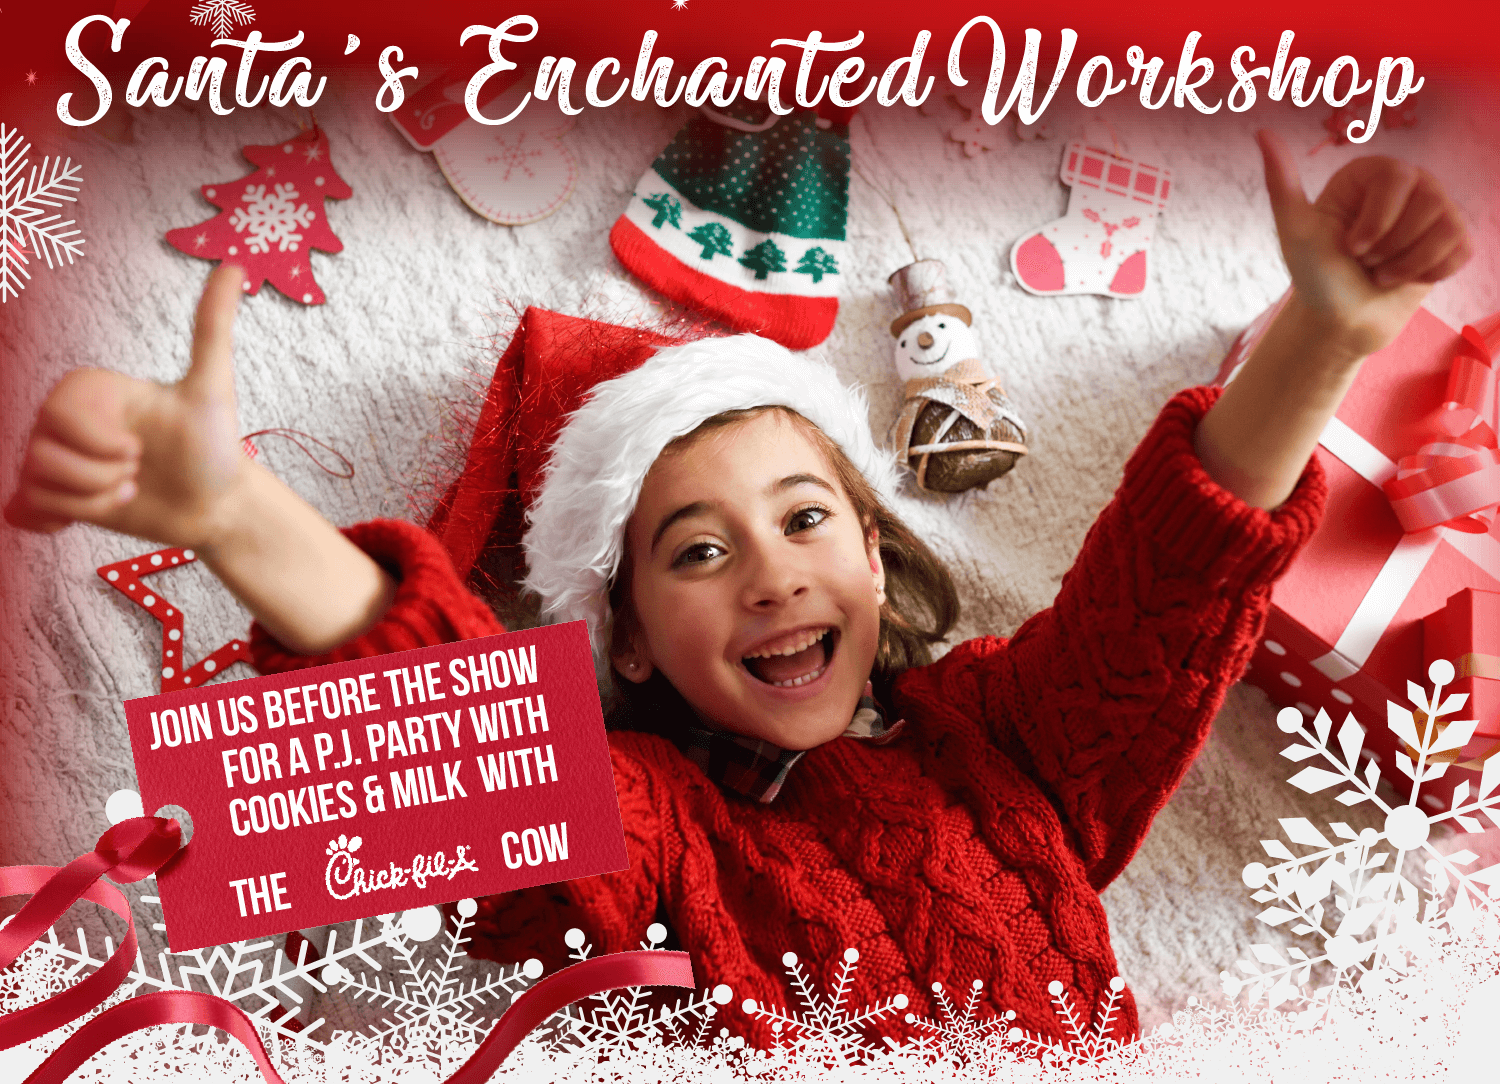 Santas Enchanted Workshop360